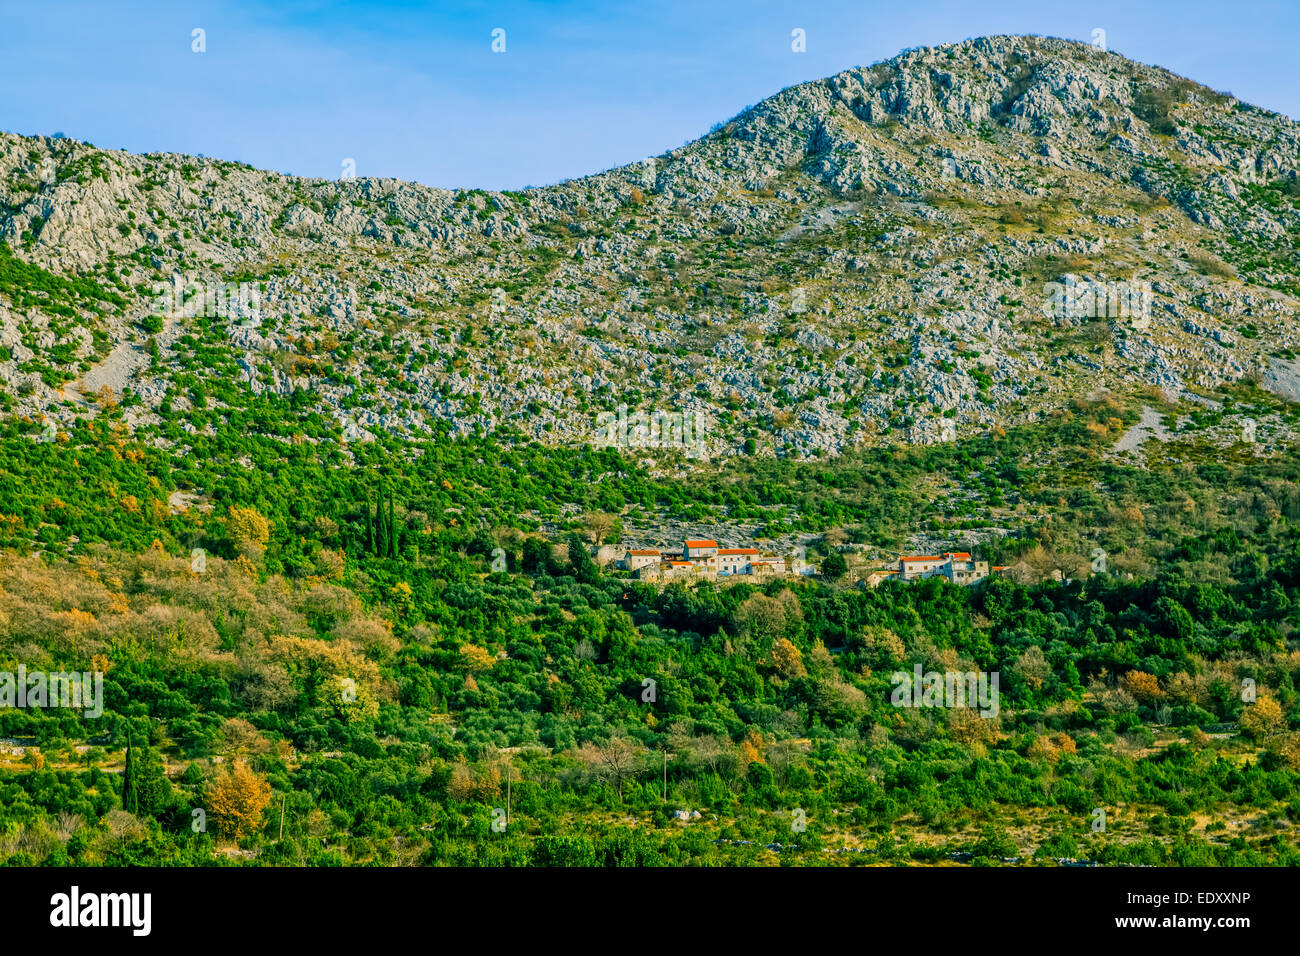 Small village in the mountain in Dalmatian hinterland, winter time. - Stock Image